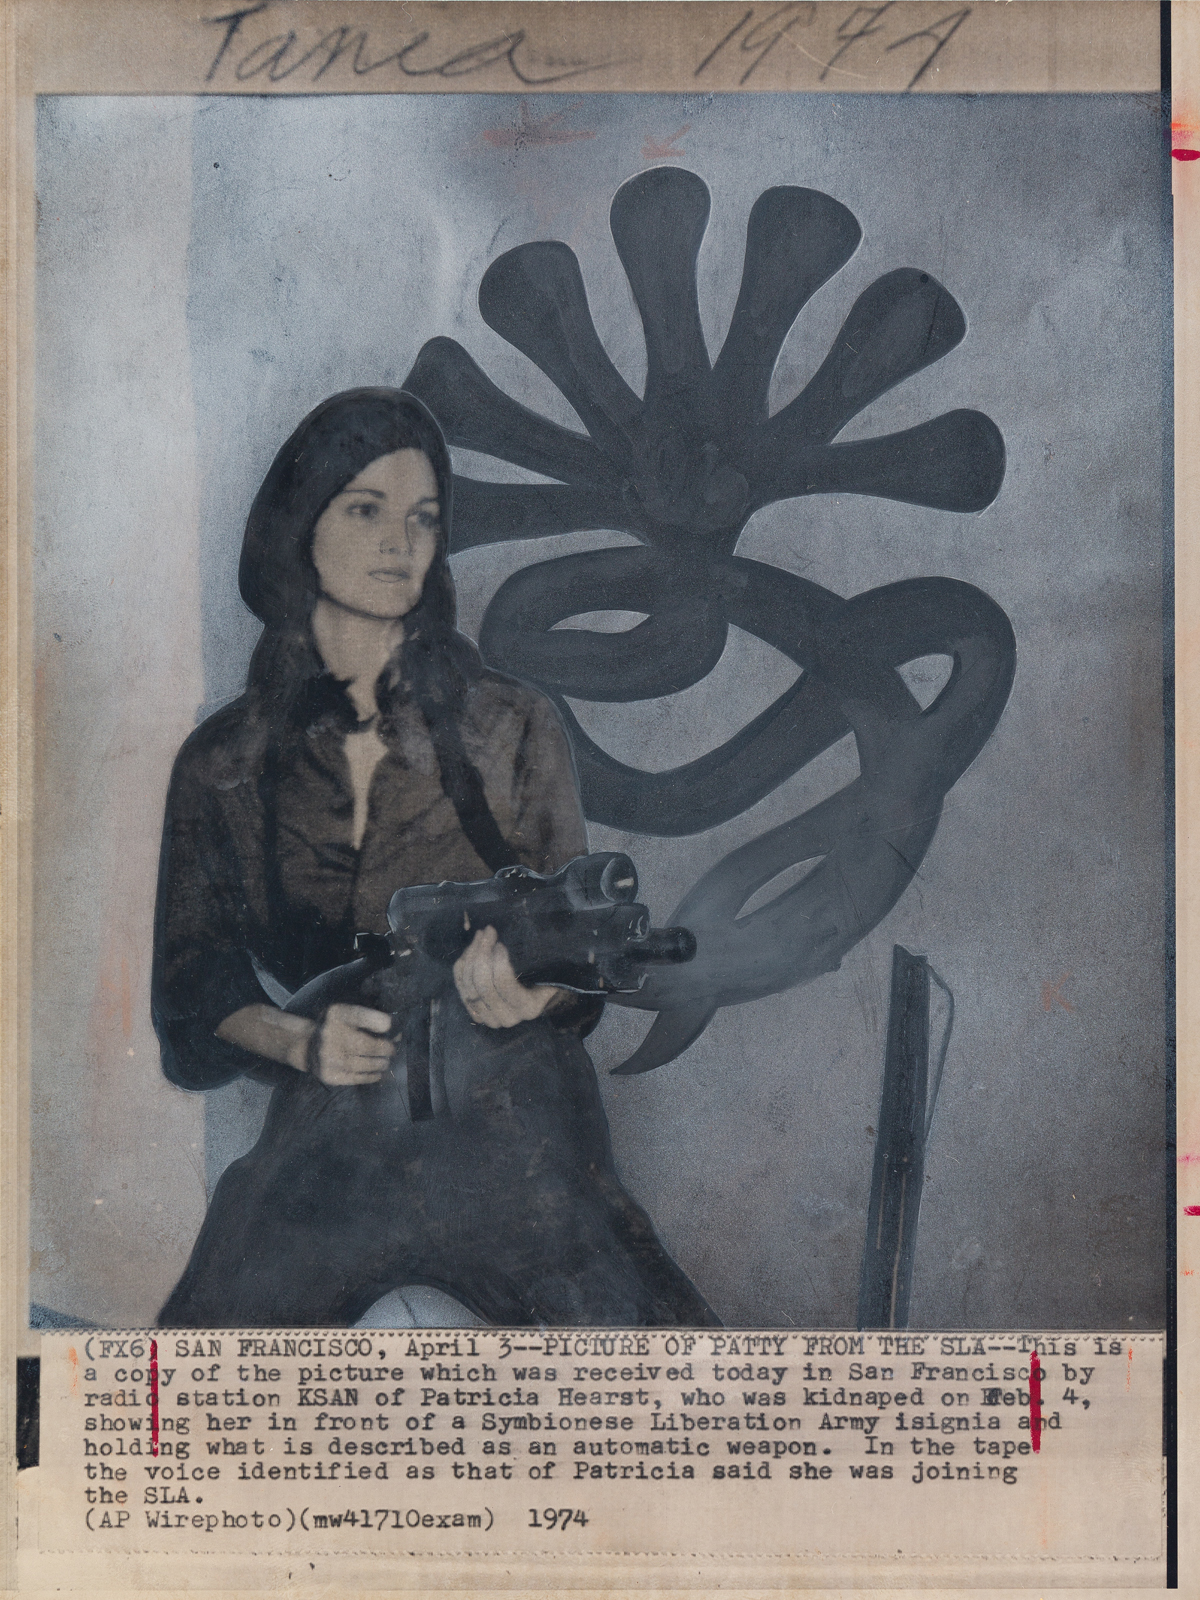 (SLA & PATTY HEARST) Two press photographs of Patty Hearst, one from the Symbionese Liberation Army and the other during her trial.